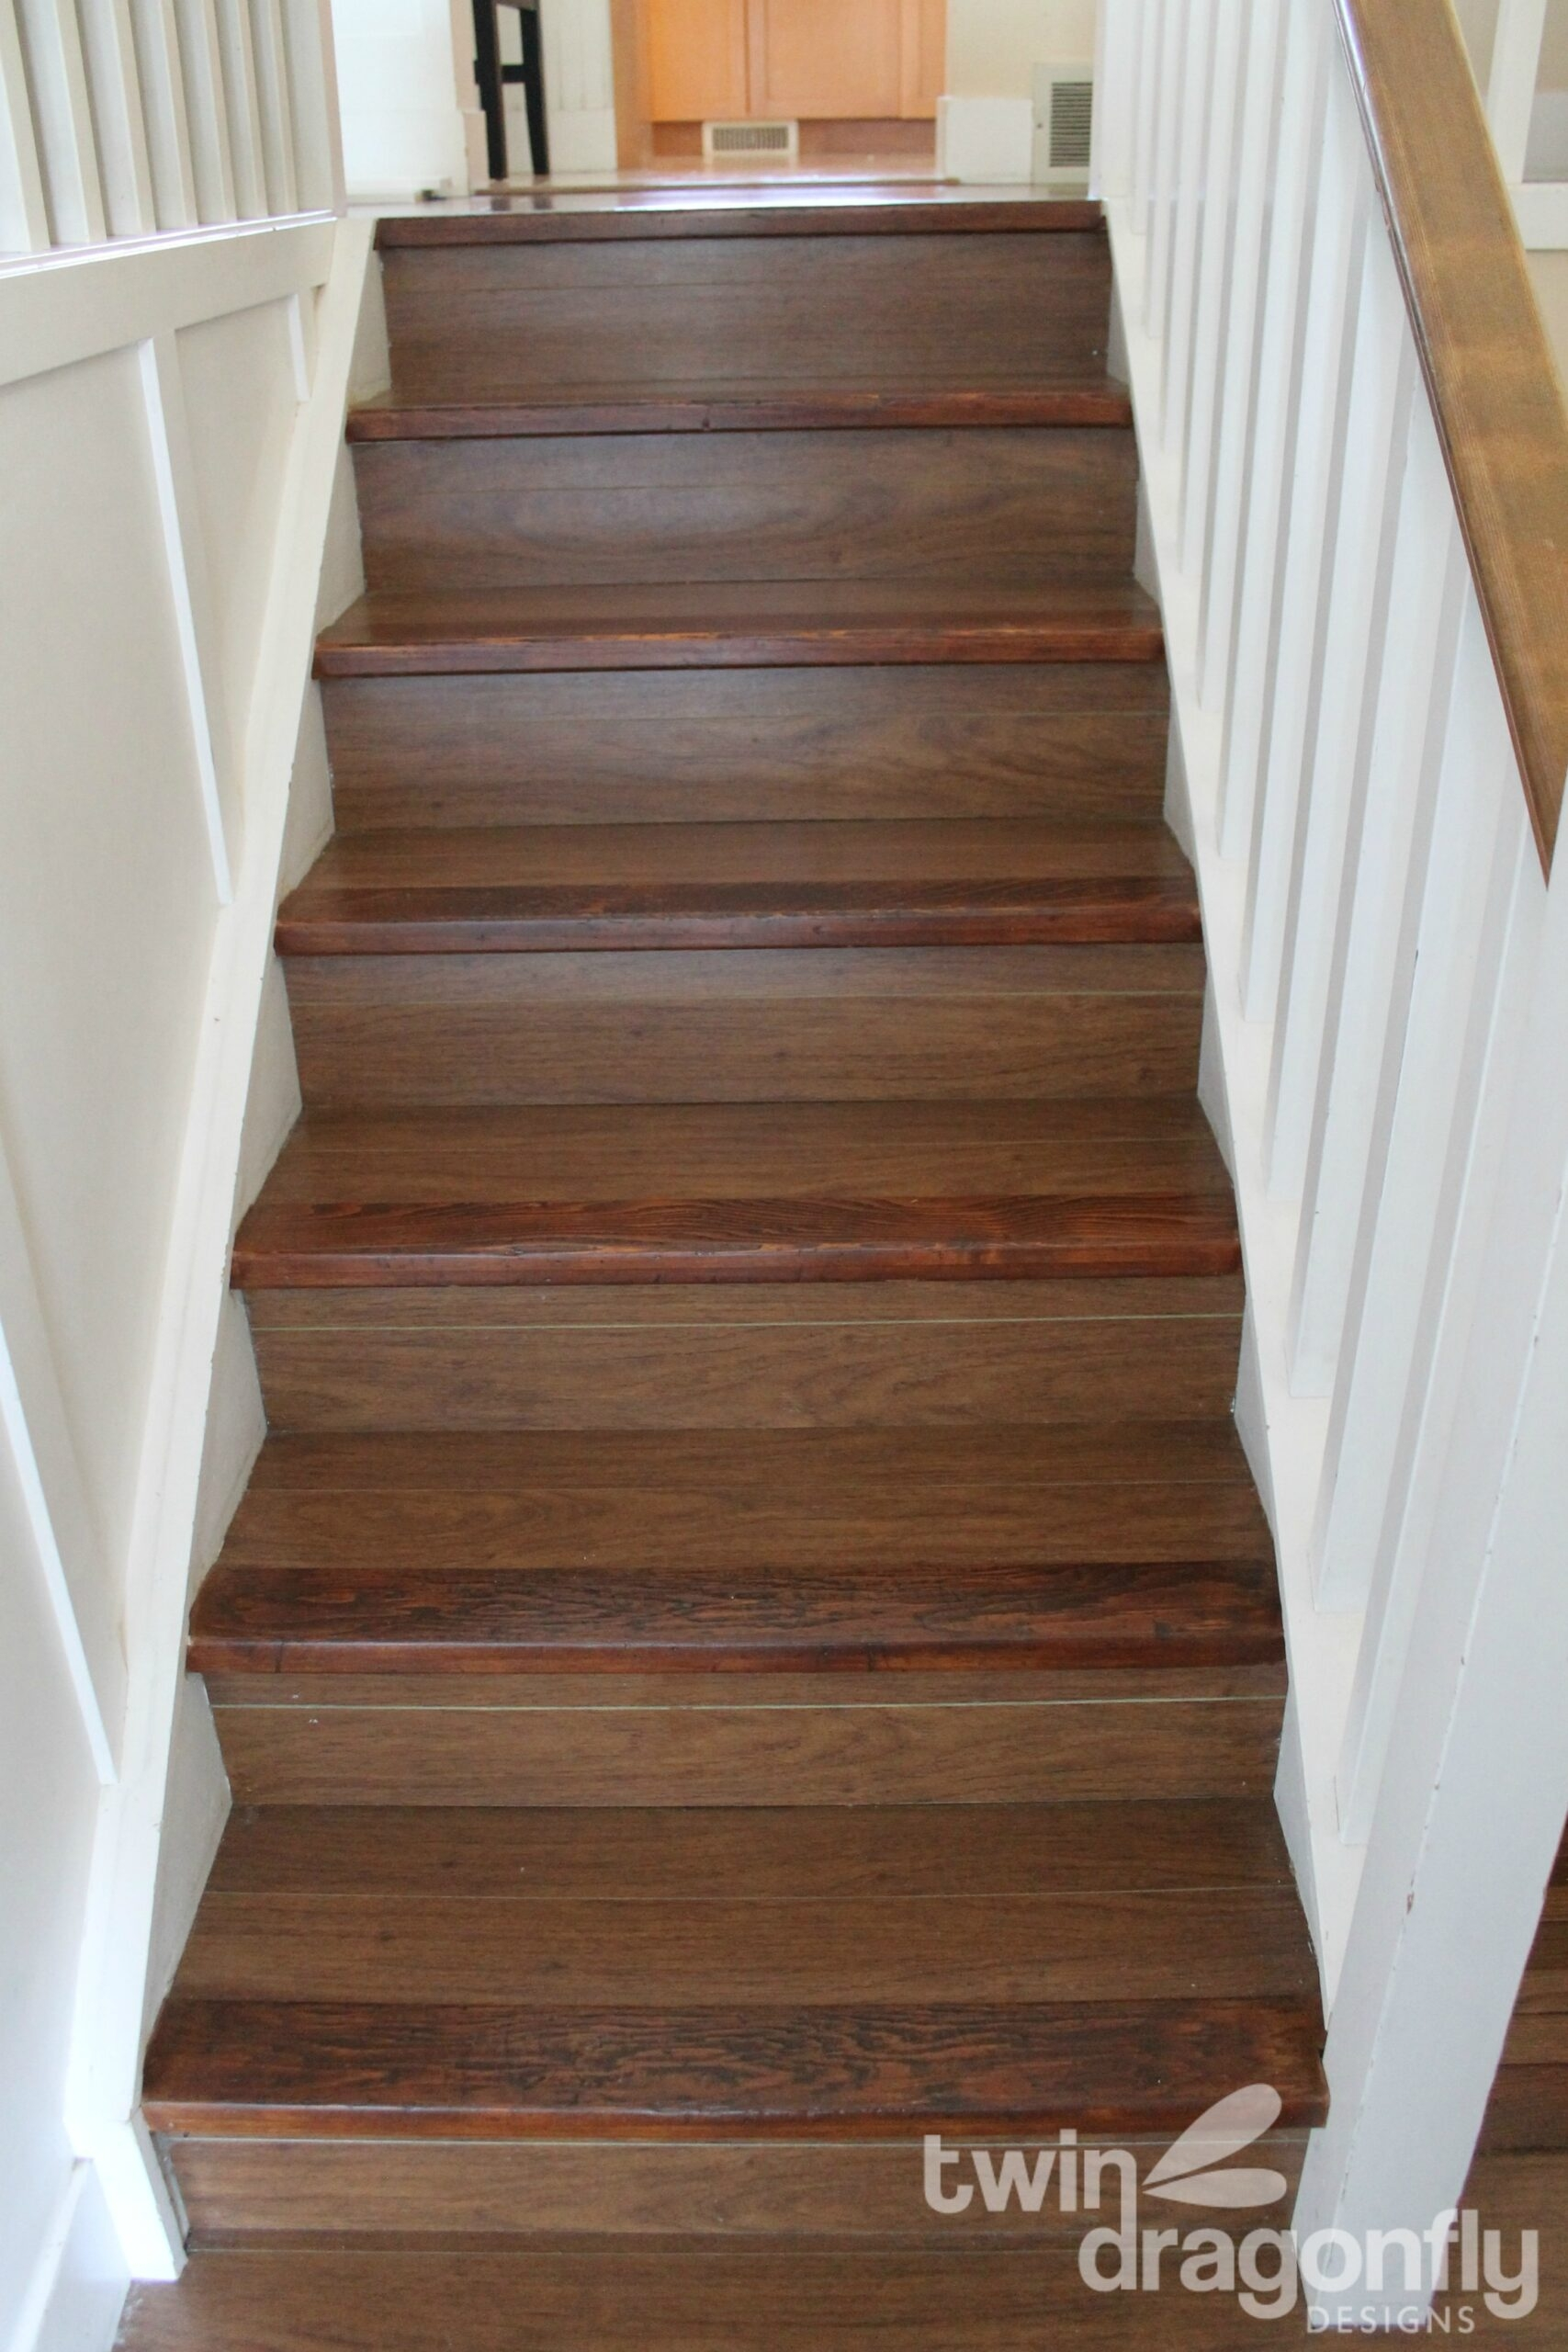 How To Refinish Wooden Stairs » Homemade Heather   Staircase Refinishing Near Me   Basement   Restaining   Brown Stained   White Riser   Grey Flooring